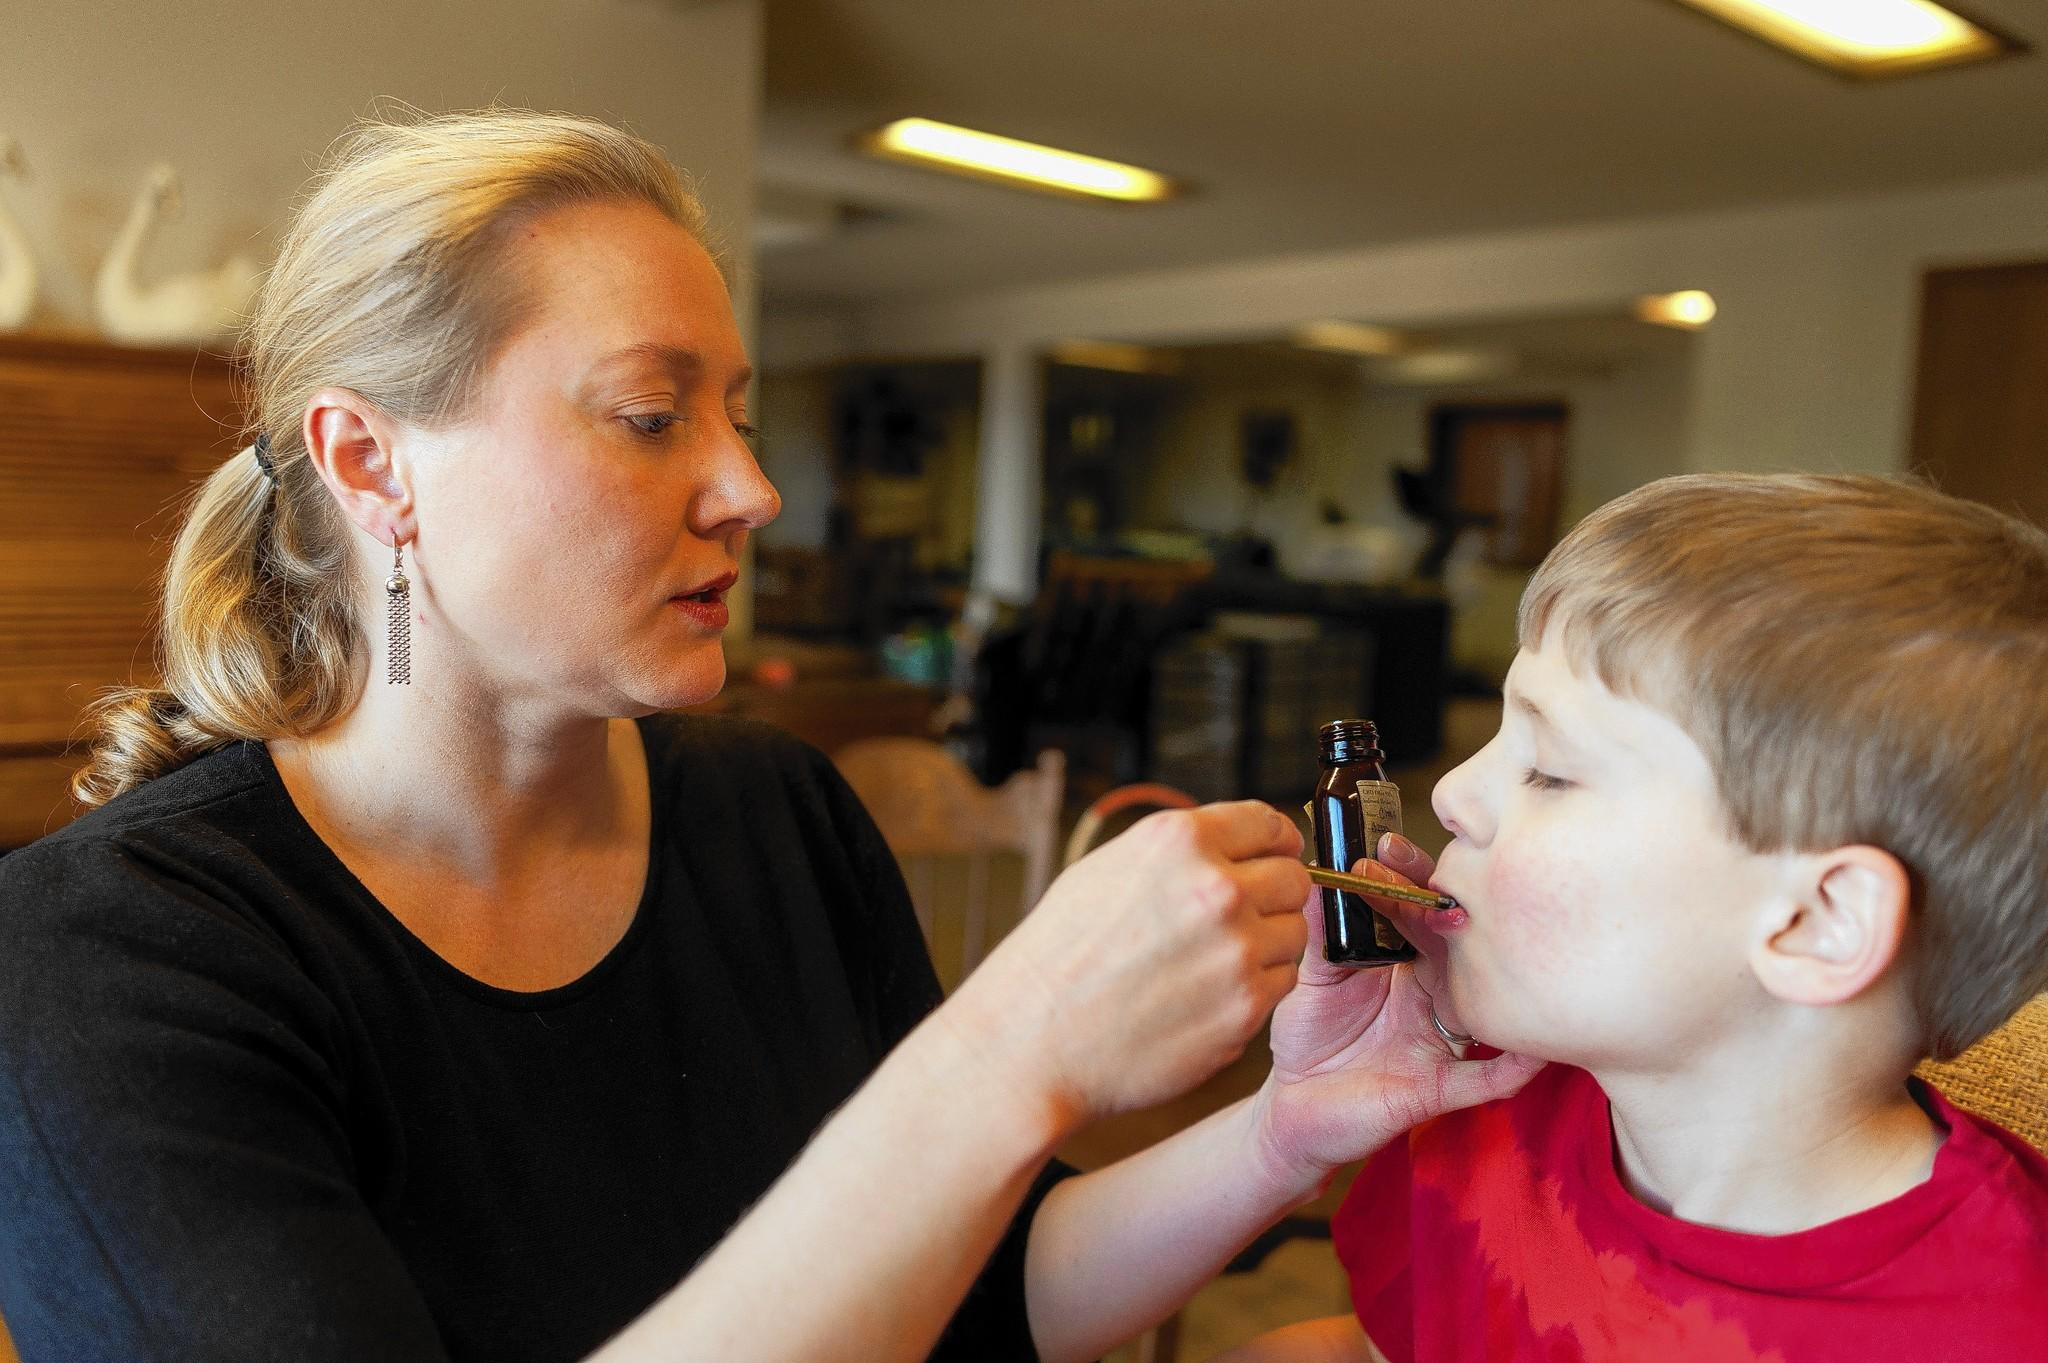 Chase Gross, of Naperville, receives a dose of marijuana-derived medicinal oil from his mother, Nicole, in Colorado Springs, Colo. The Gross family moved away from Illinois, which bans medicinal marijuana for children, to obtain access to the drug for Chase, who has a severe form of epilepsy.